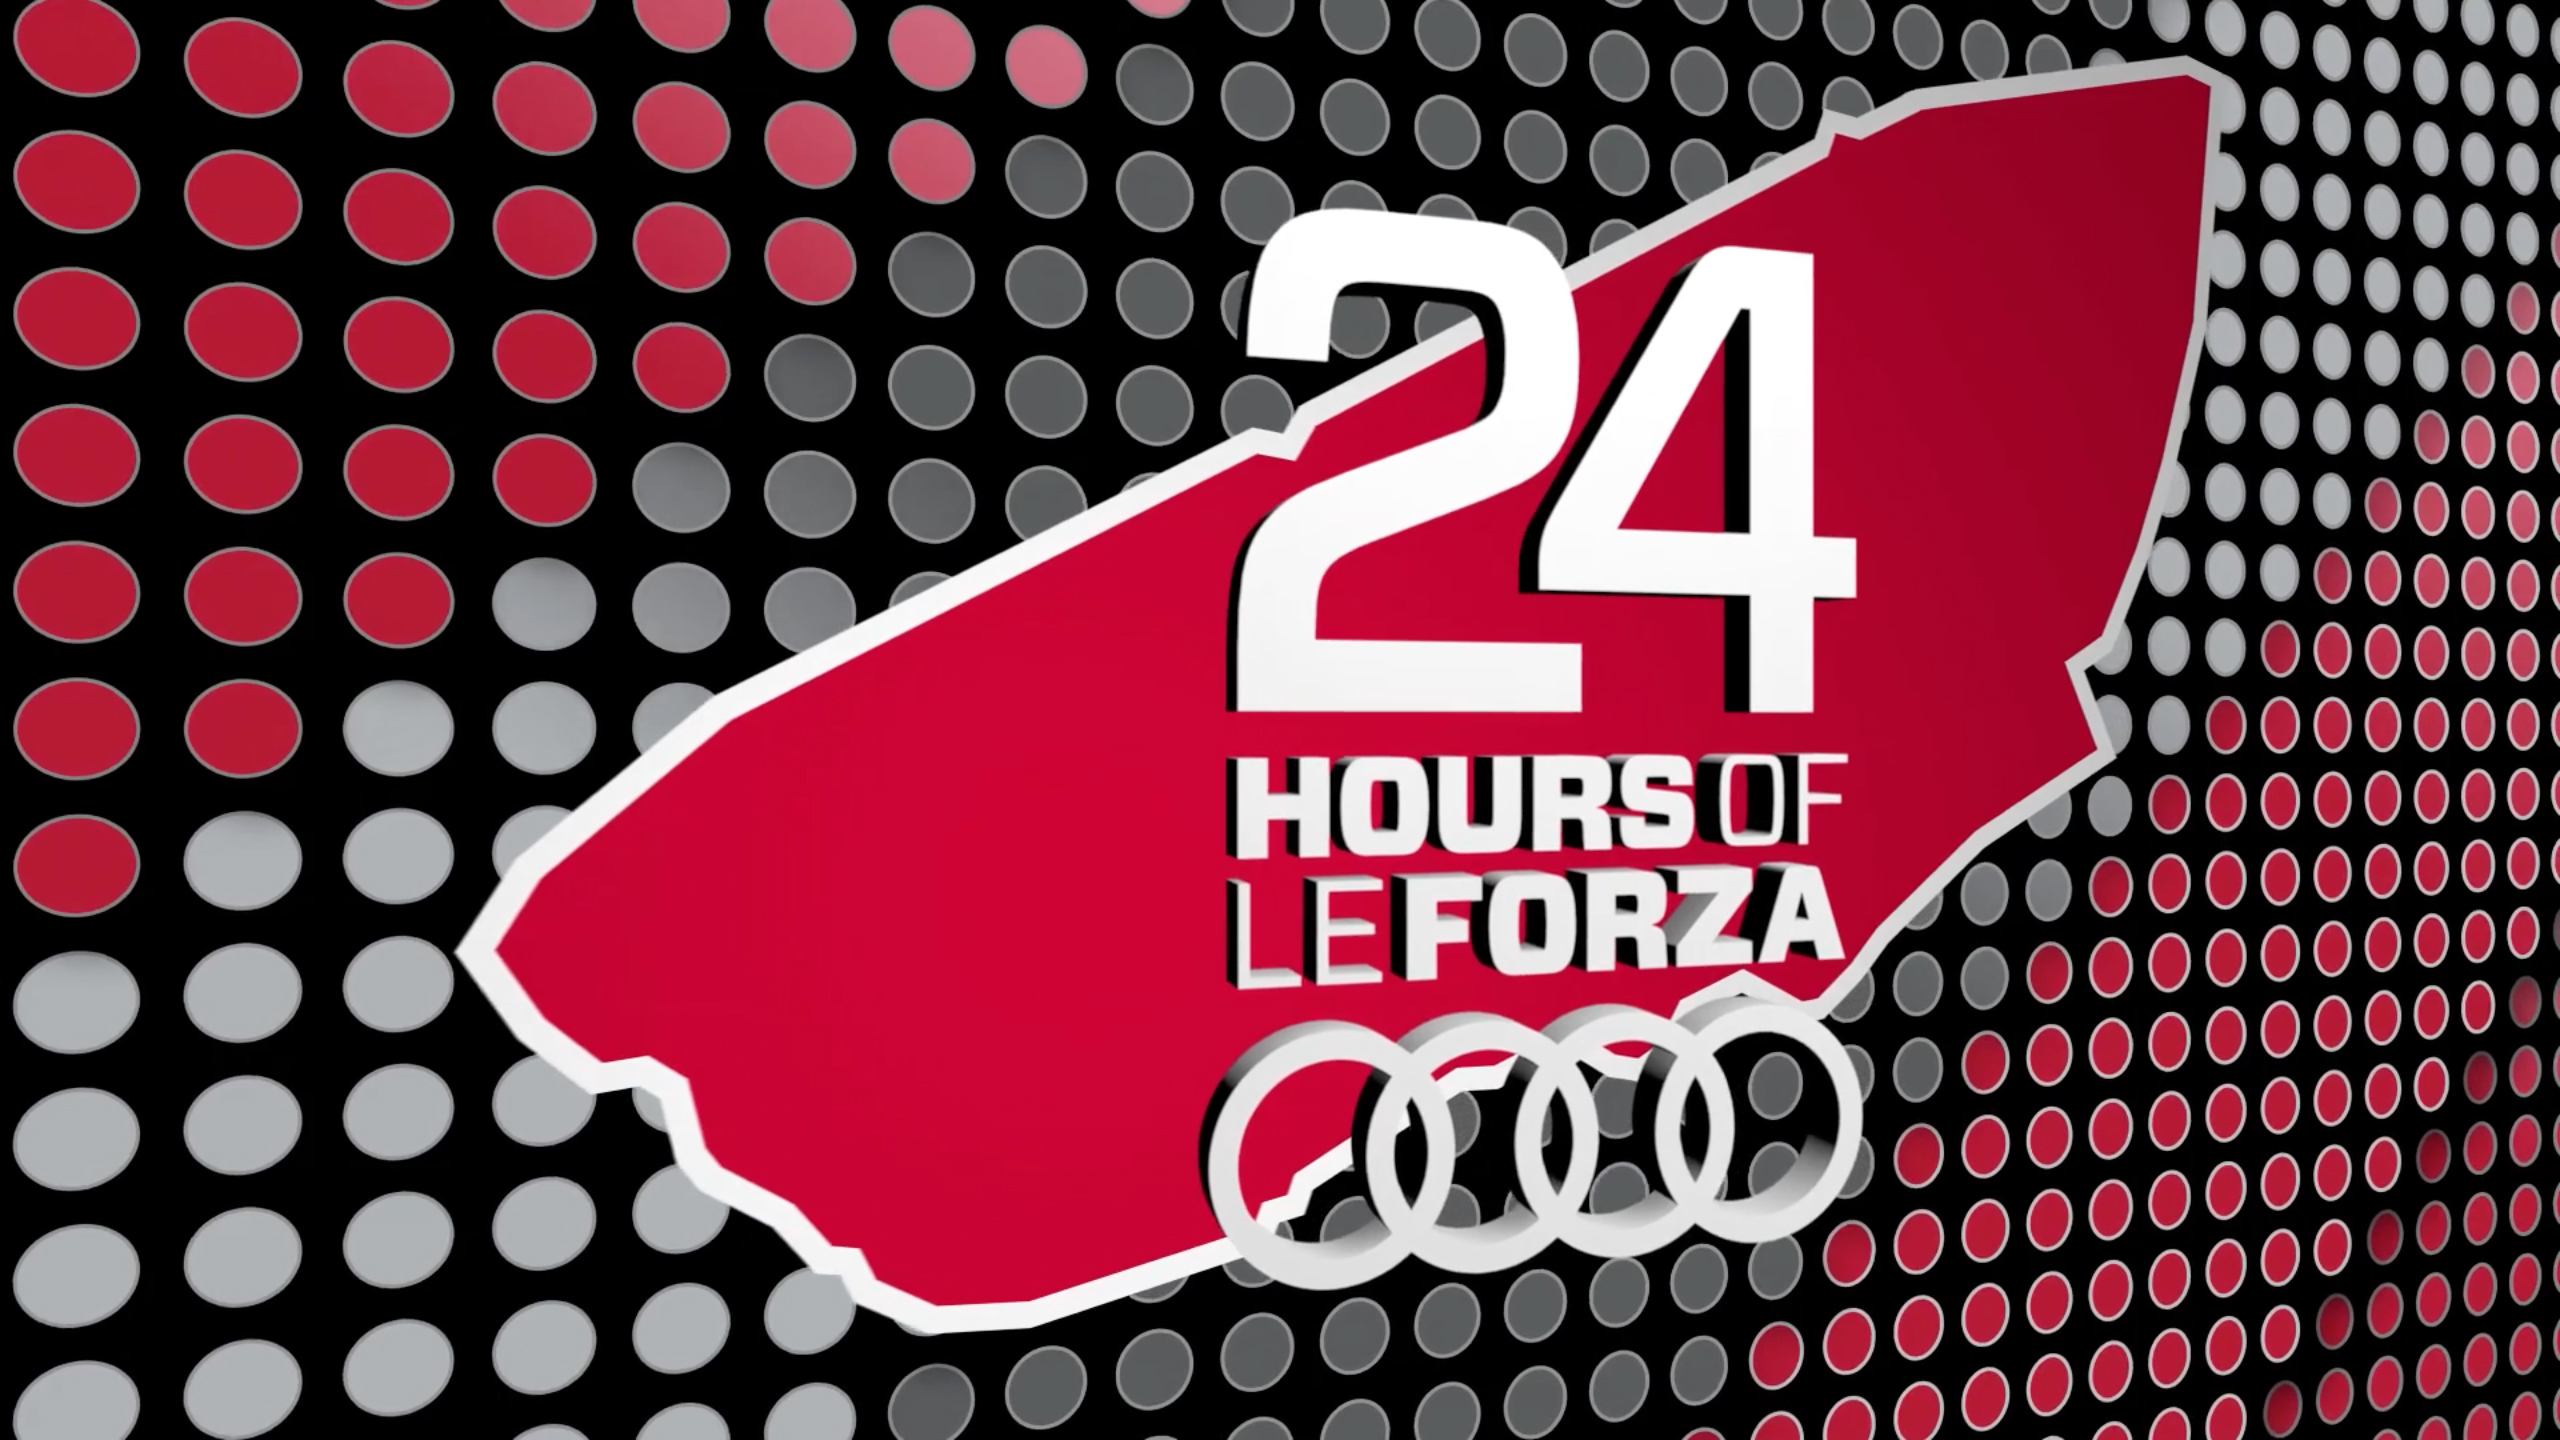 Nominee - 24 Hours of Le Forza